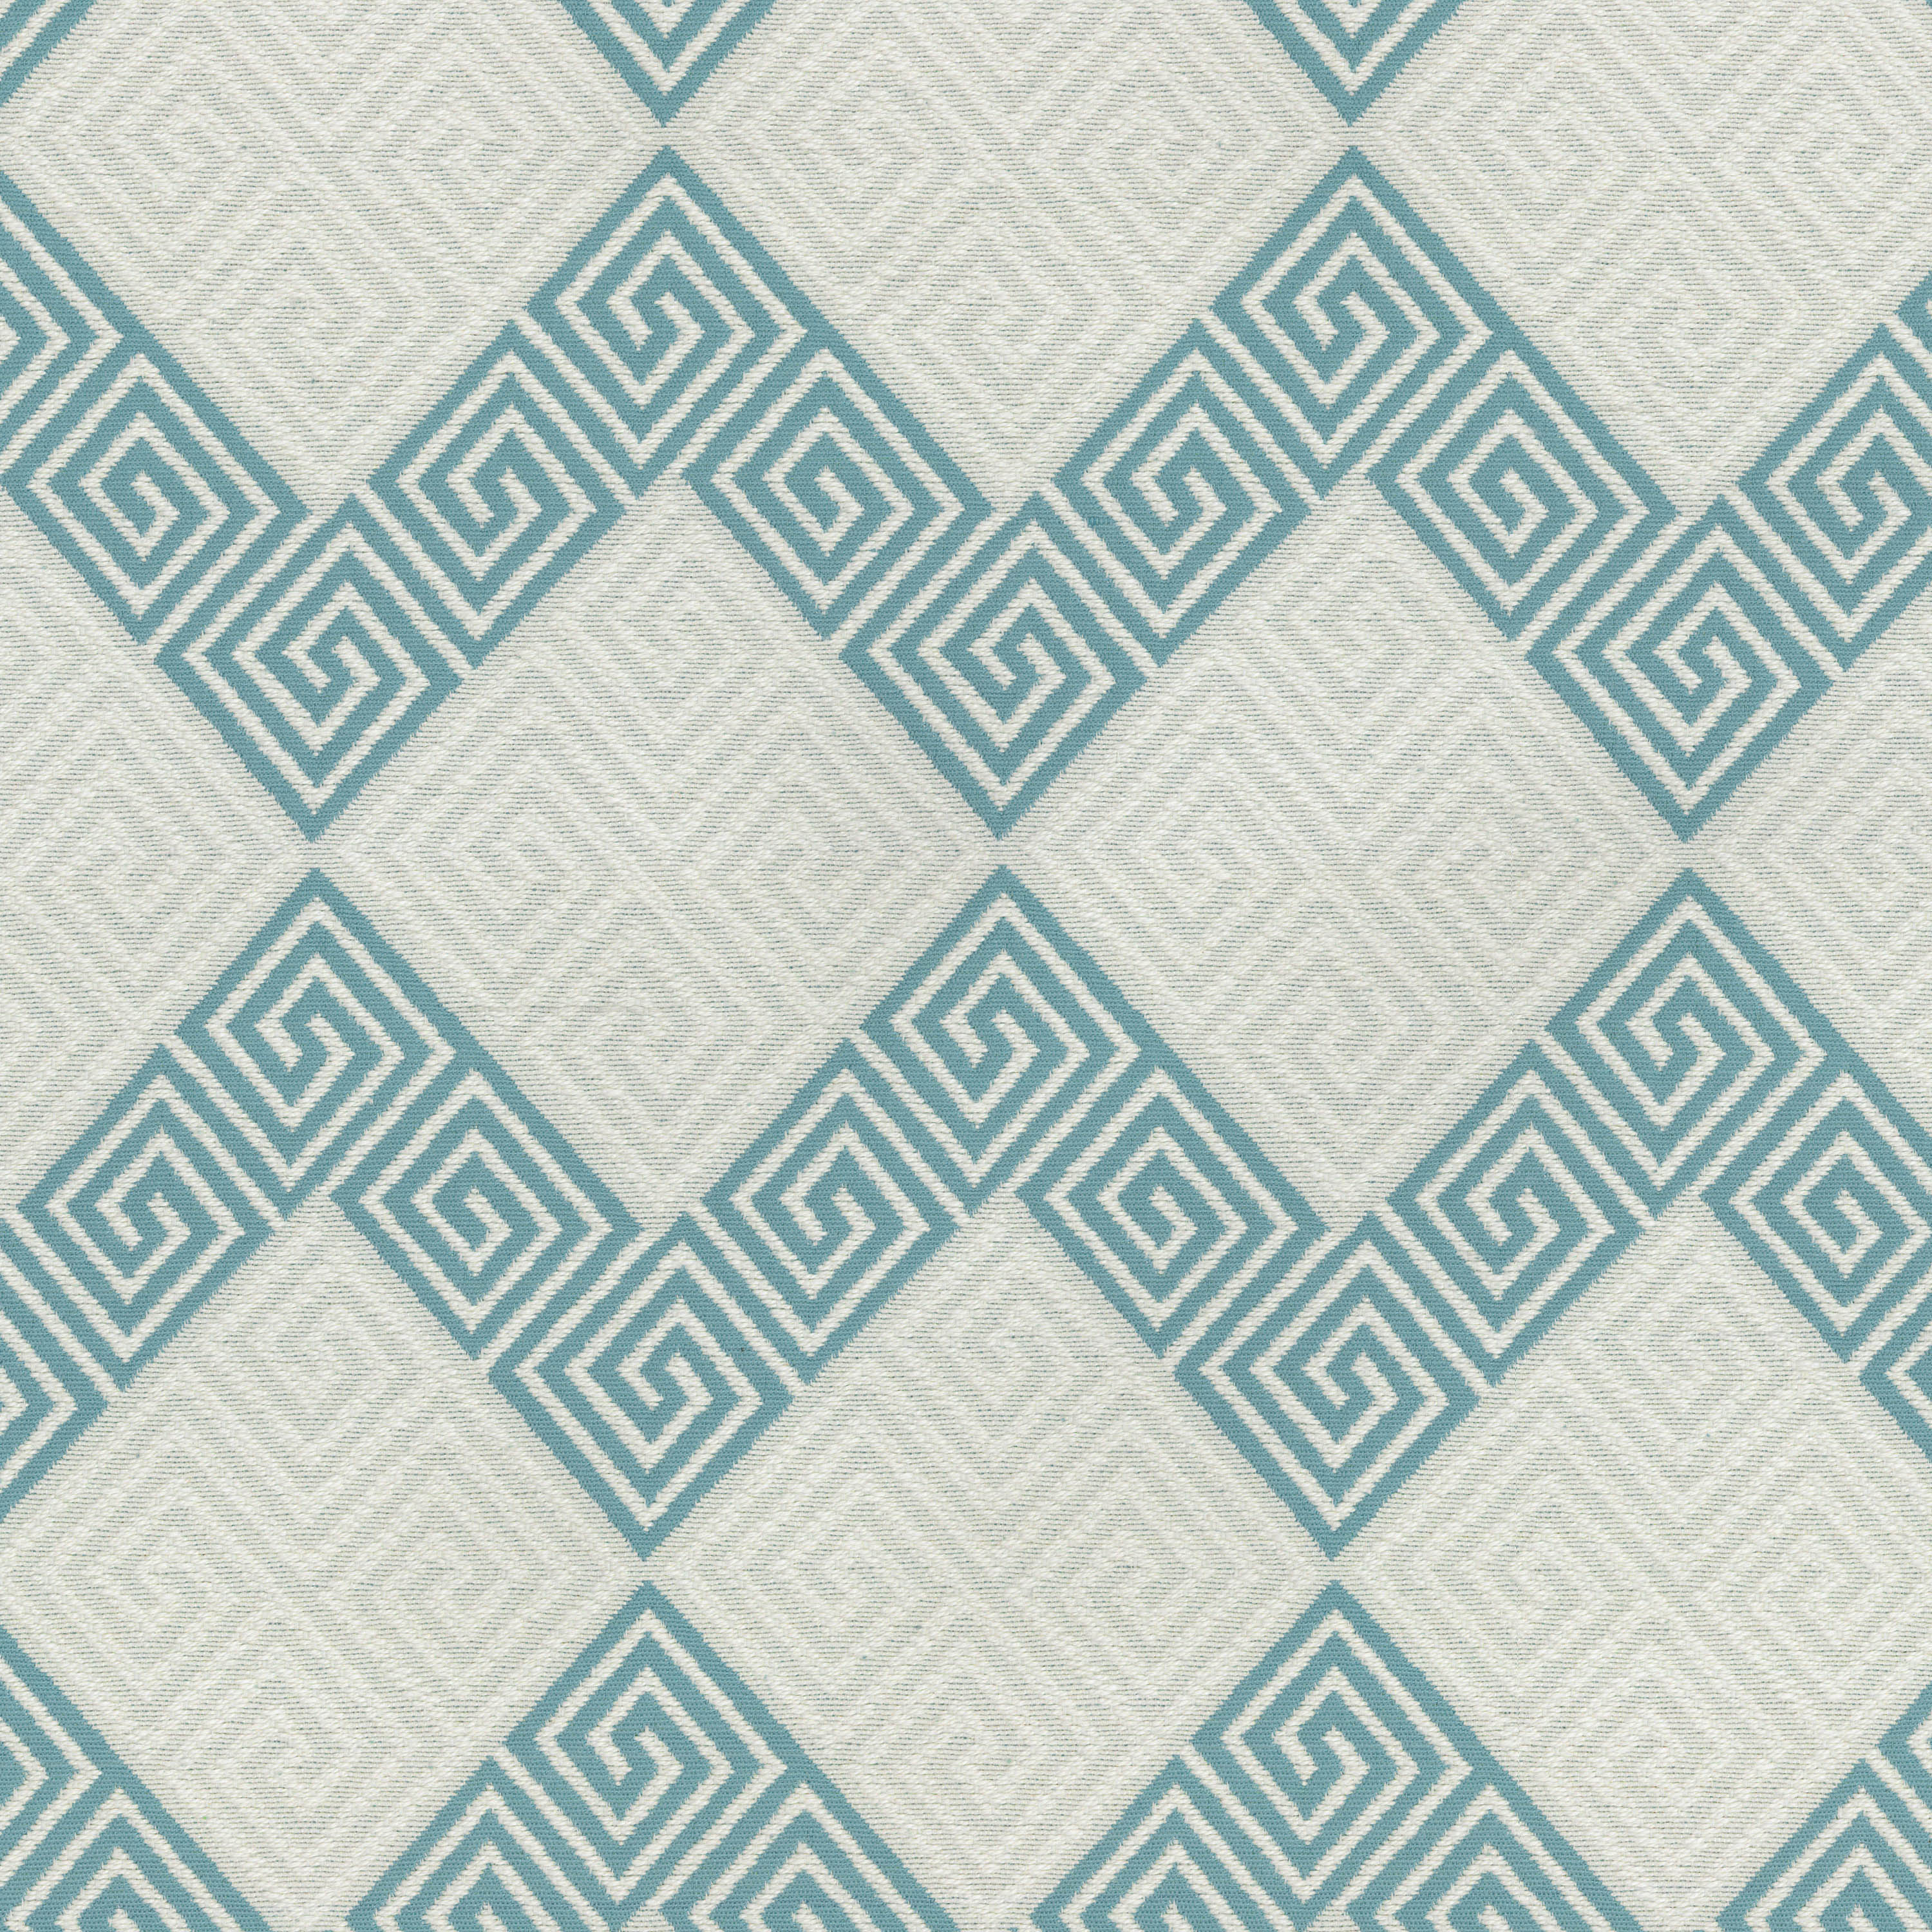 Beau Waverly Upholstery Fabric 57\u0022 On Key/Turquoise